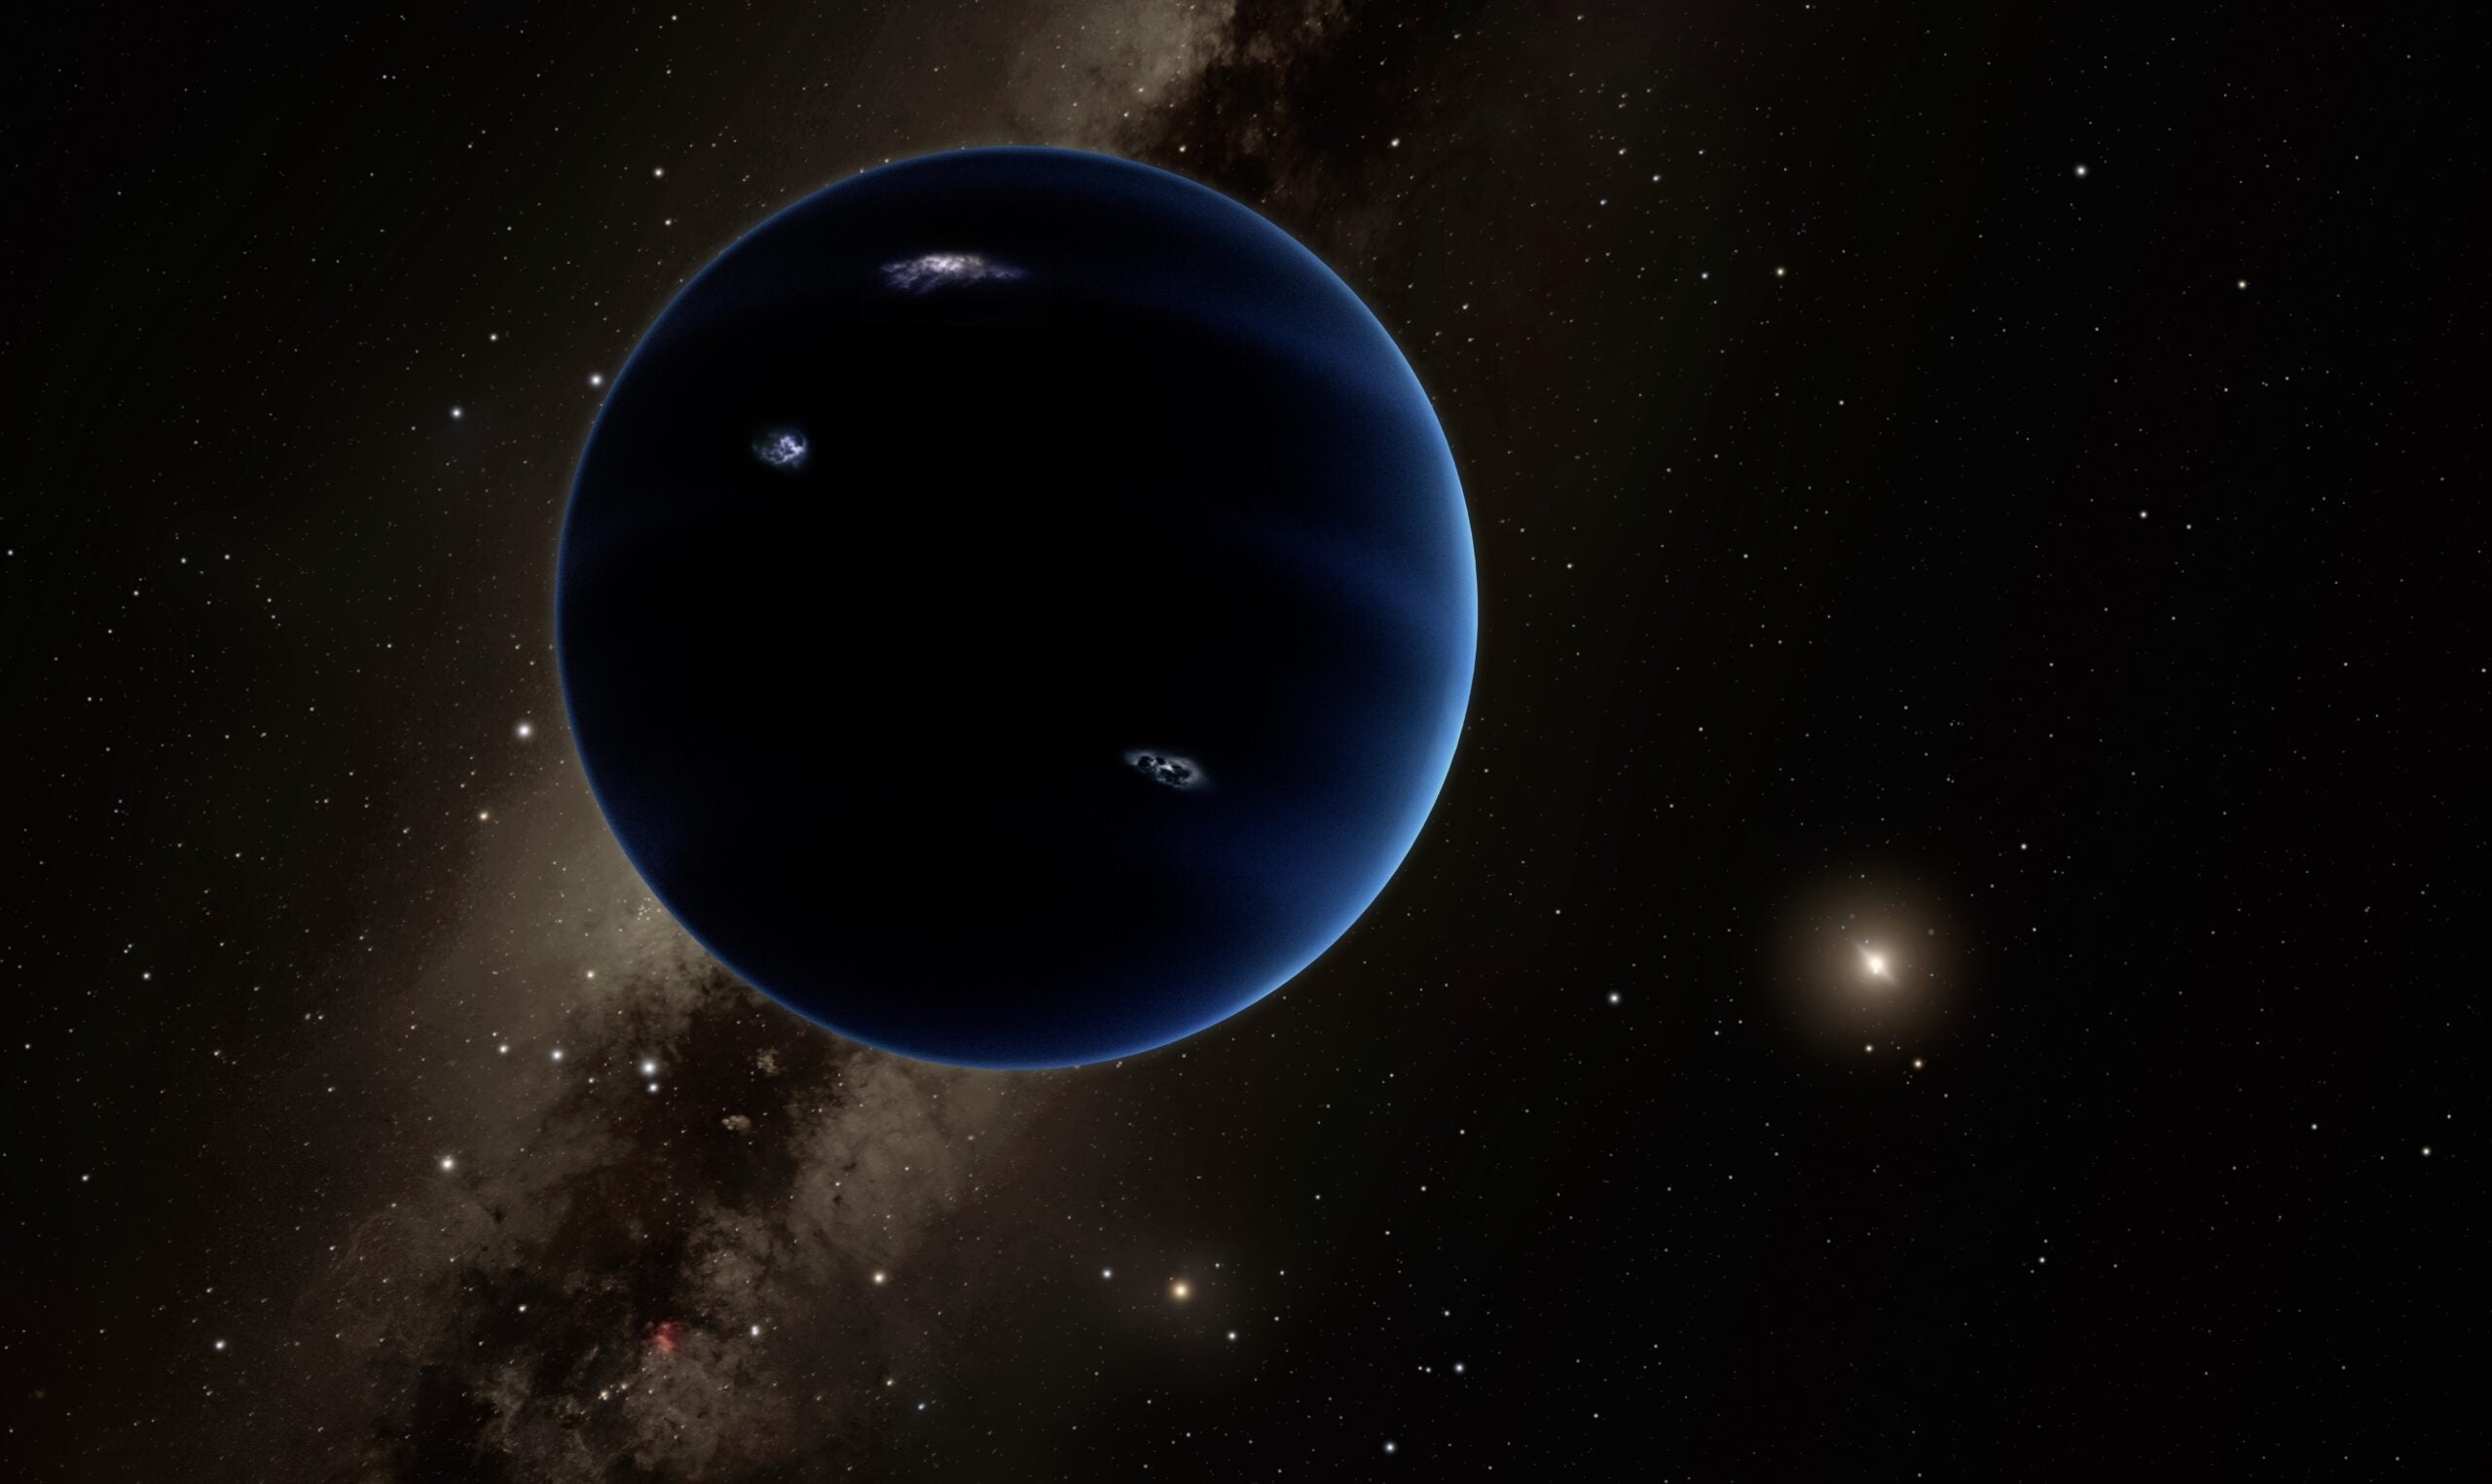 Where did 'Planet Nine' come from?